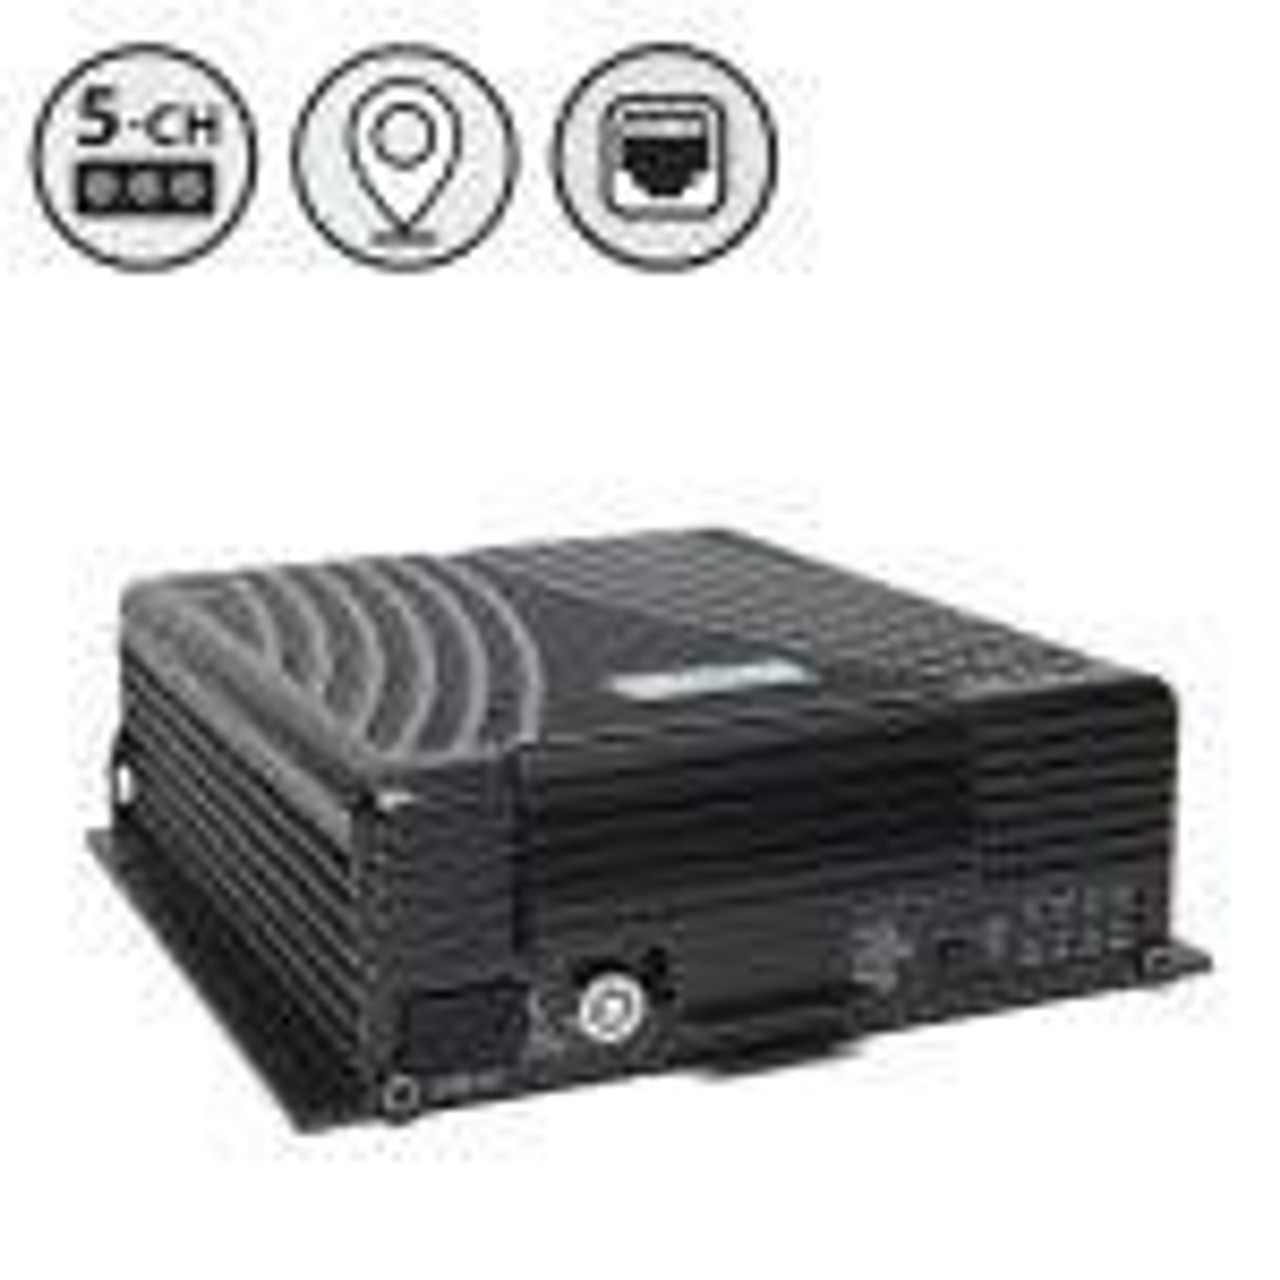 MobileMule™ 5550 | 5 Channel Mobile DVR with GPS (HDD), Western Digital Hard Drive